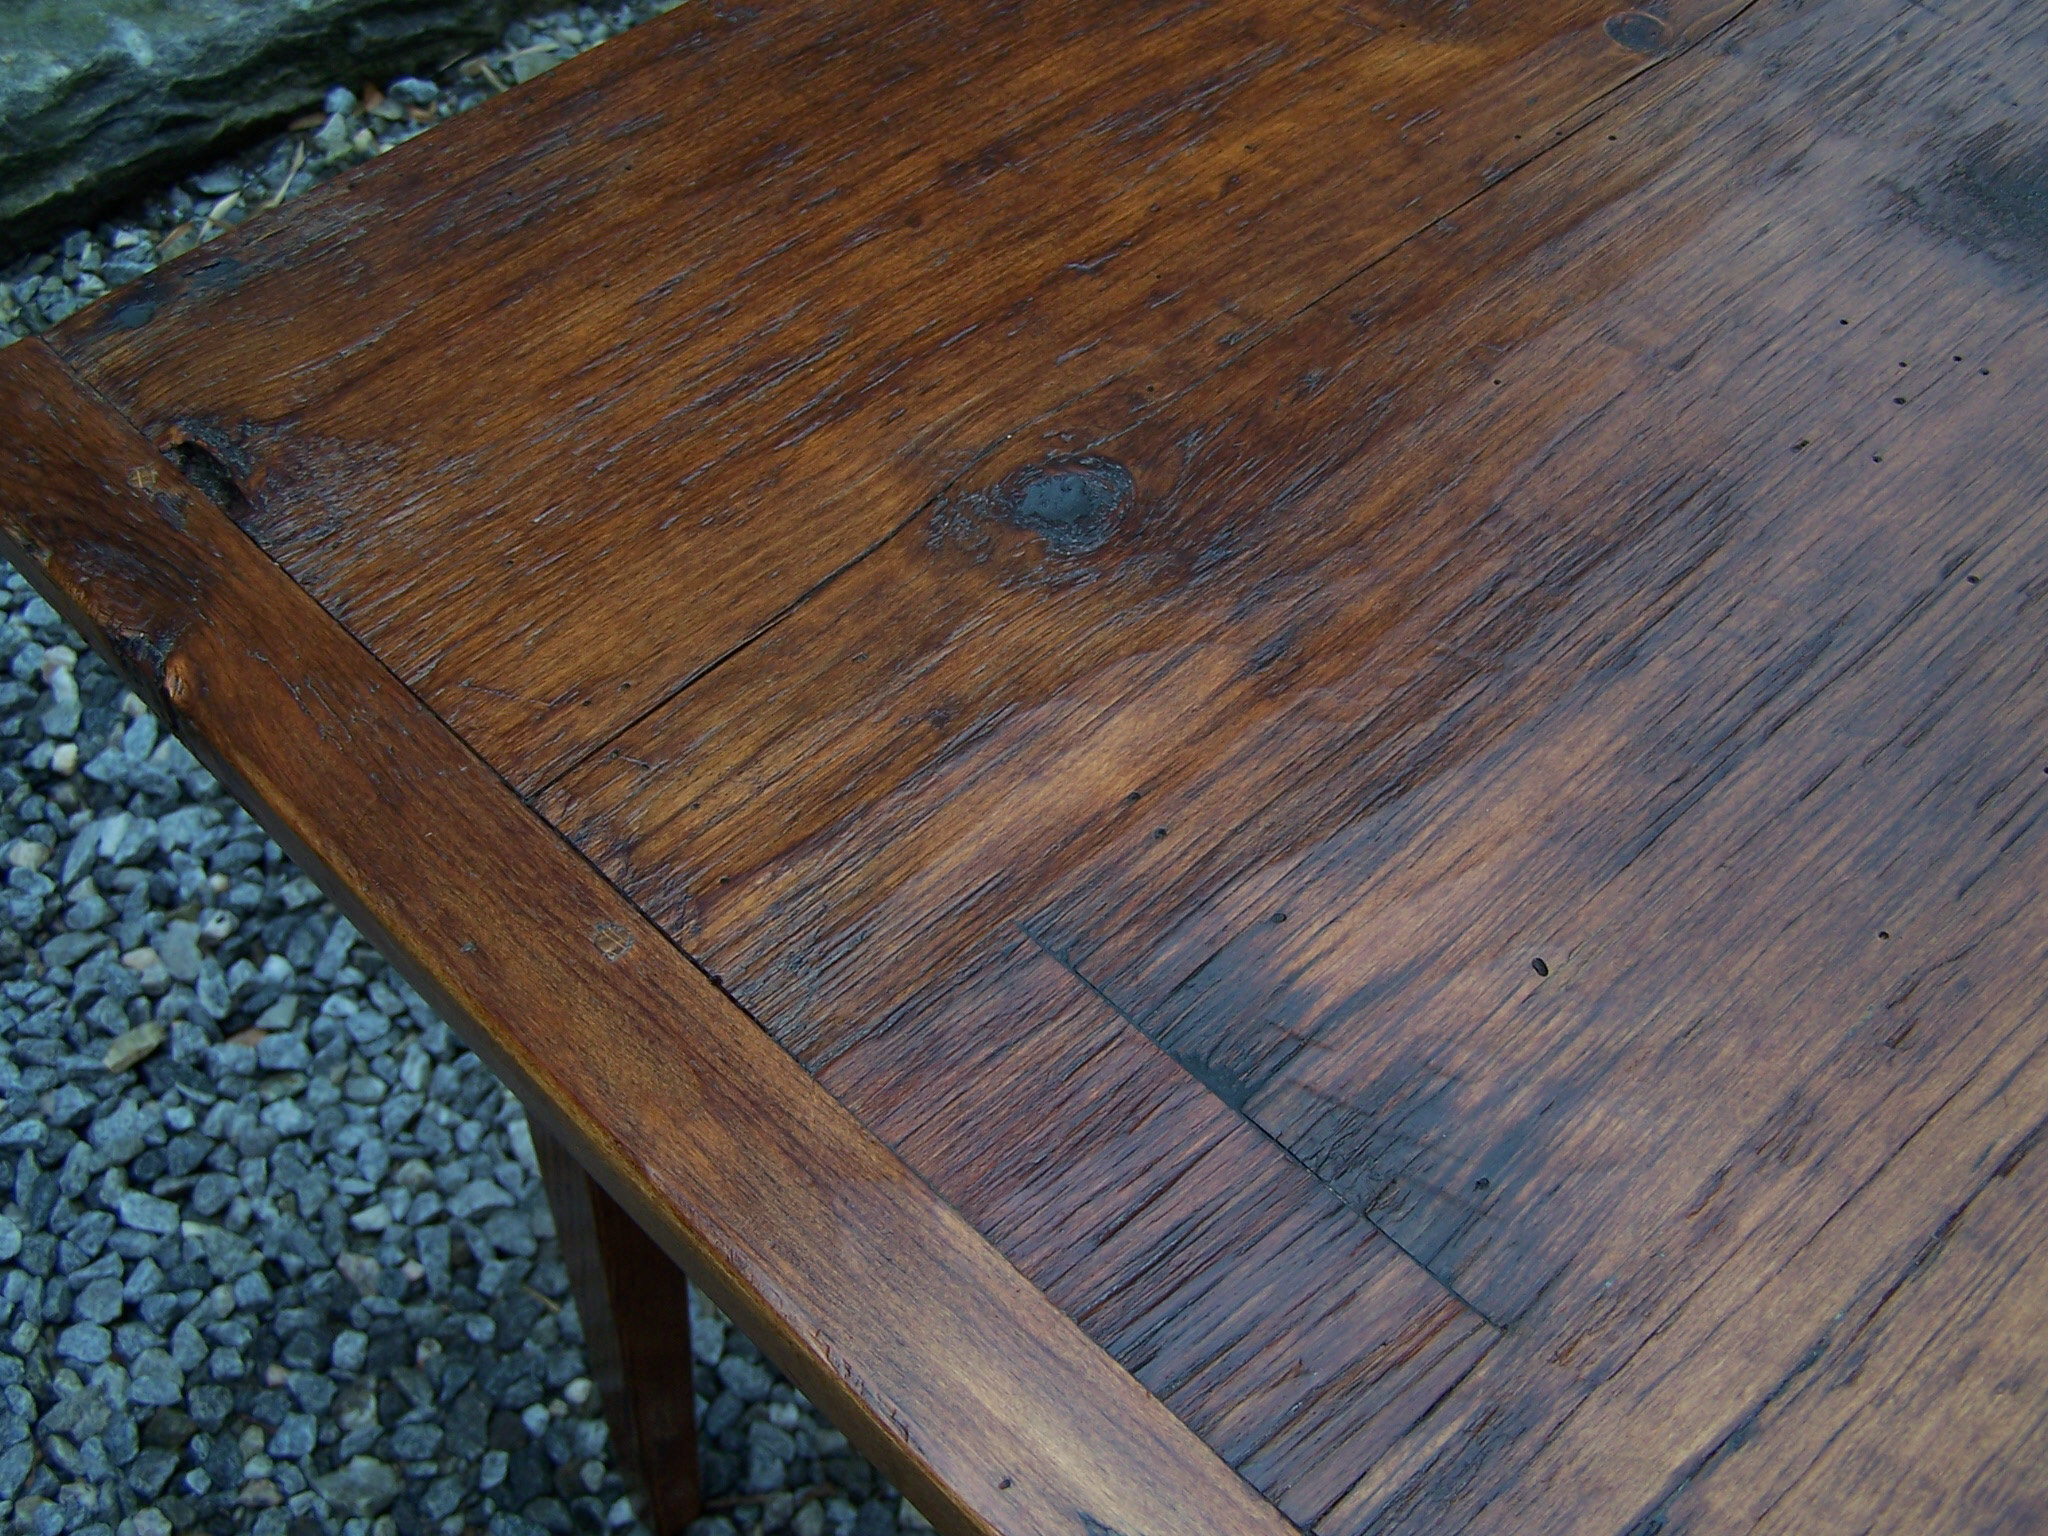 Antique Handmade New England pine country kitchen table kitchen tables for sale Handmade New England pine country kitchen table For Sale